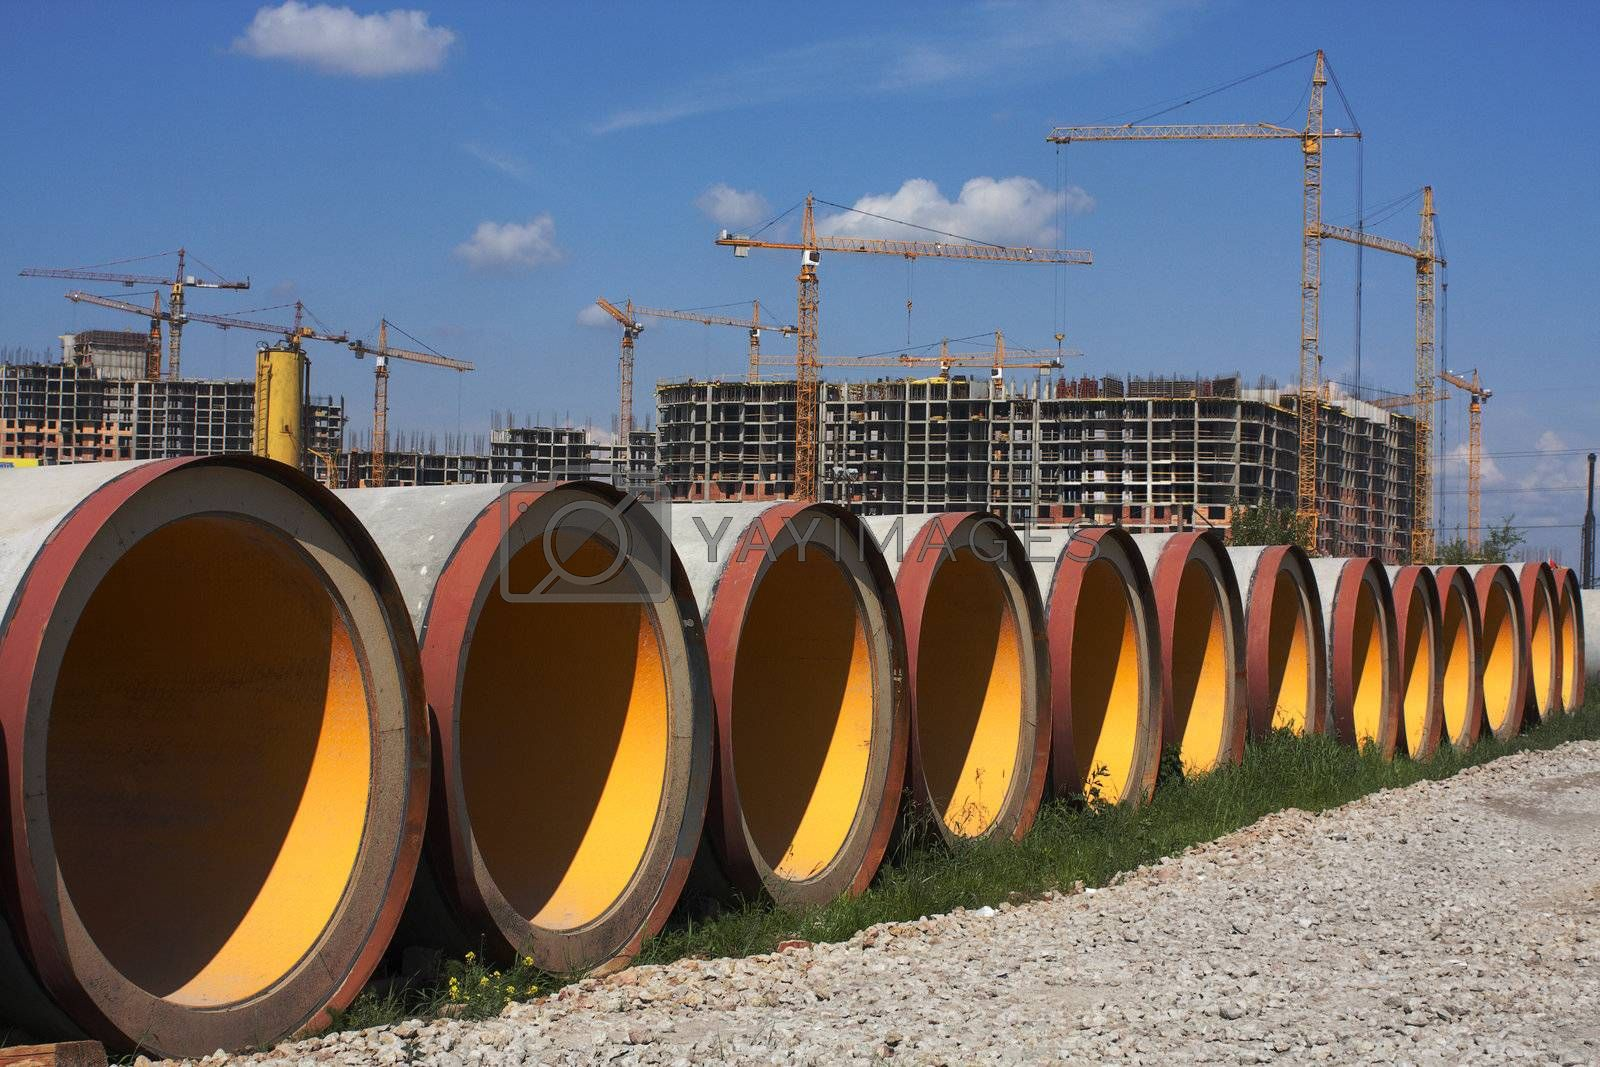 Concrete pipes for construction of new sewer system. Construction of a complex of buildings